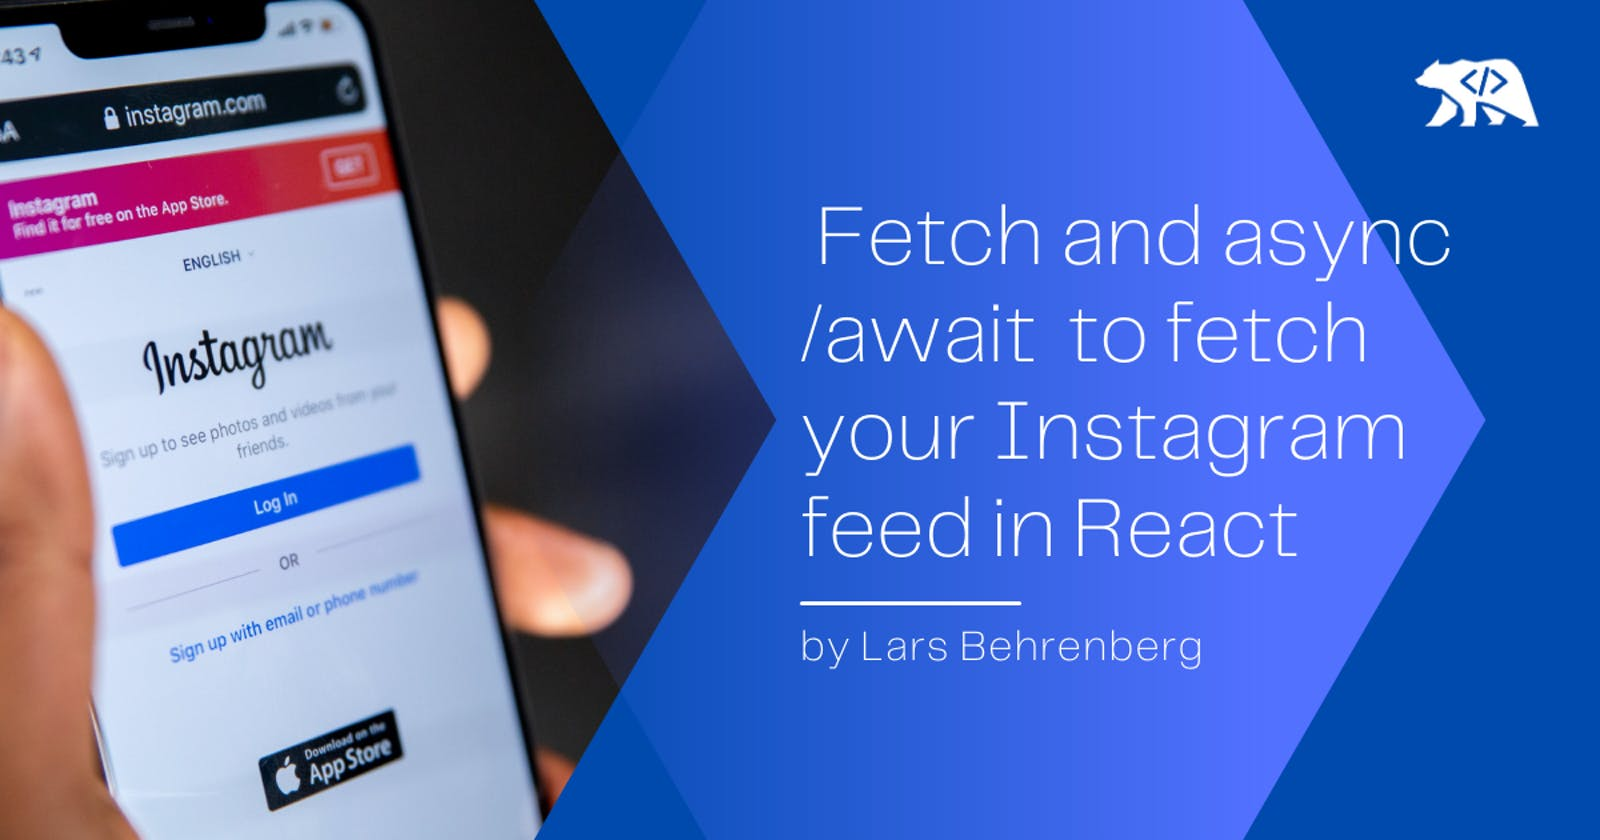 Use Javascript's Fetch API with async/await to fetch your Instagram feed in React